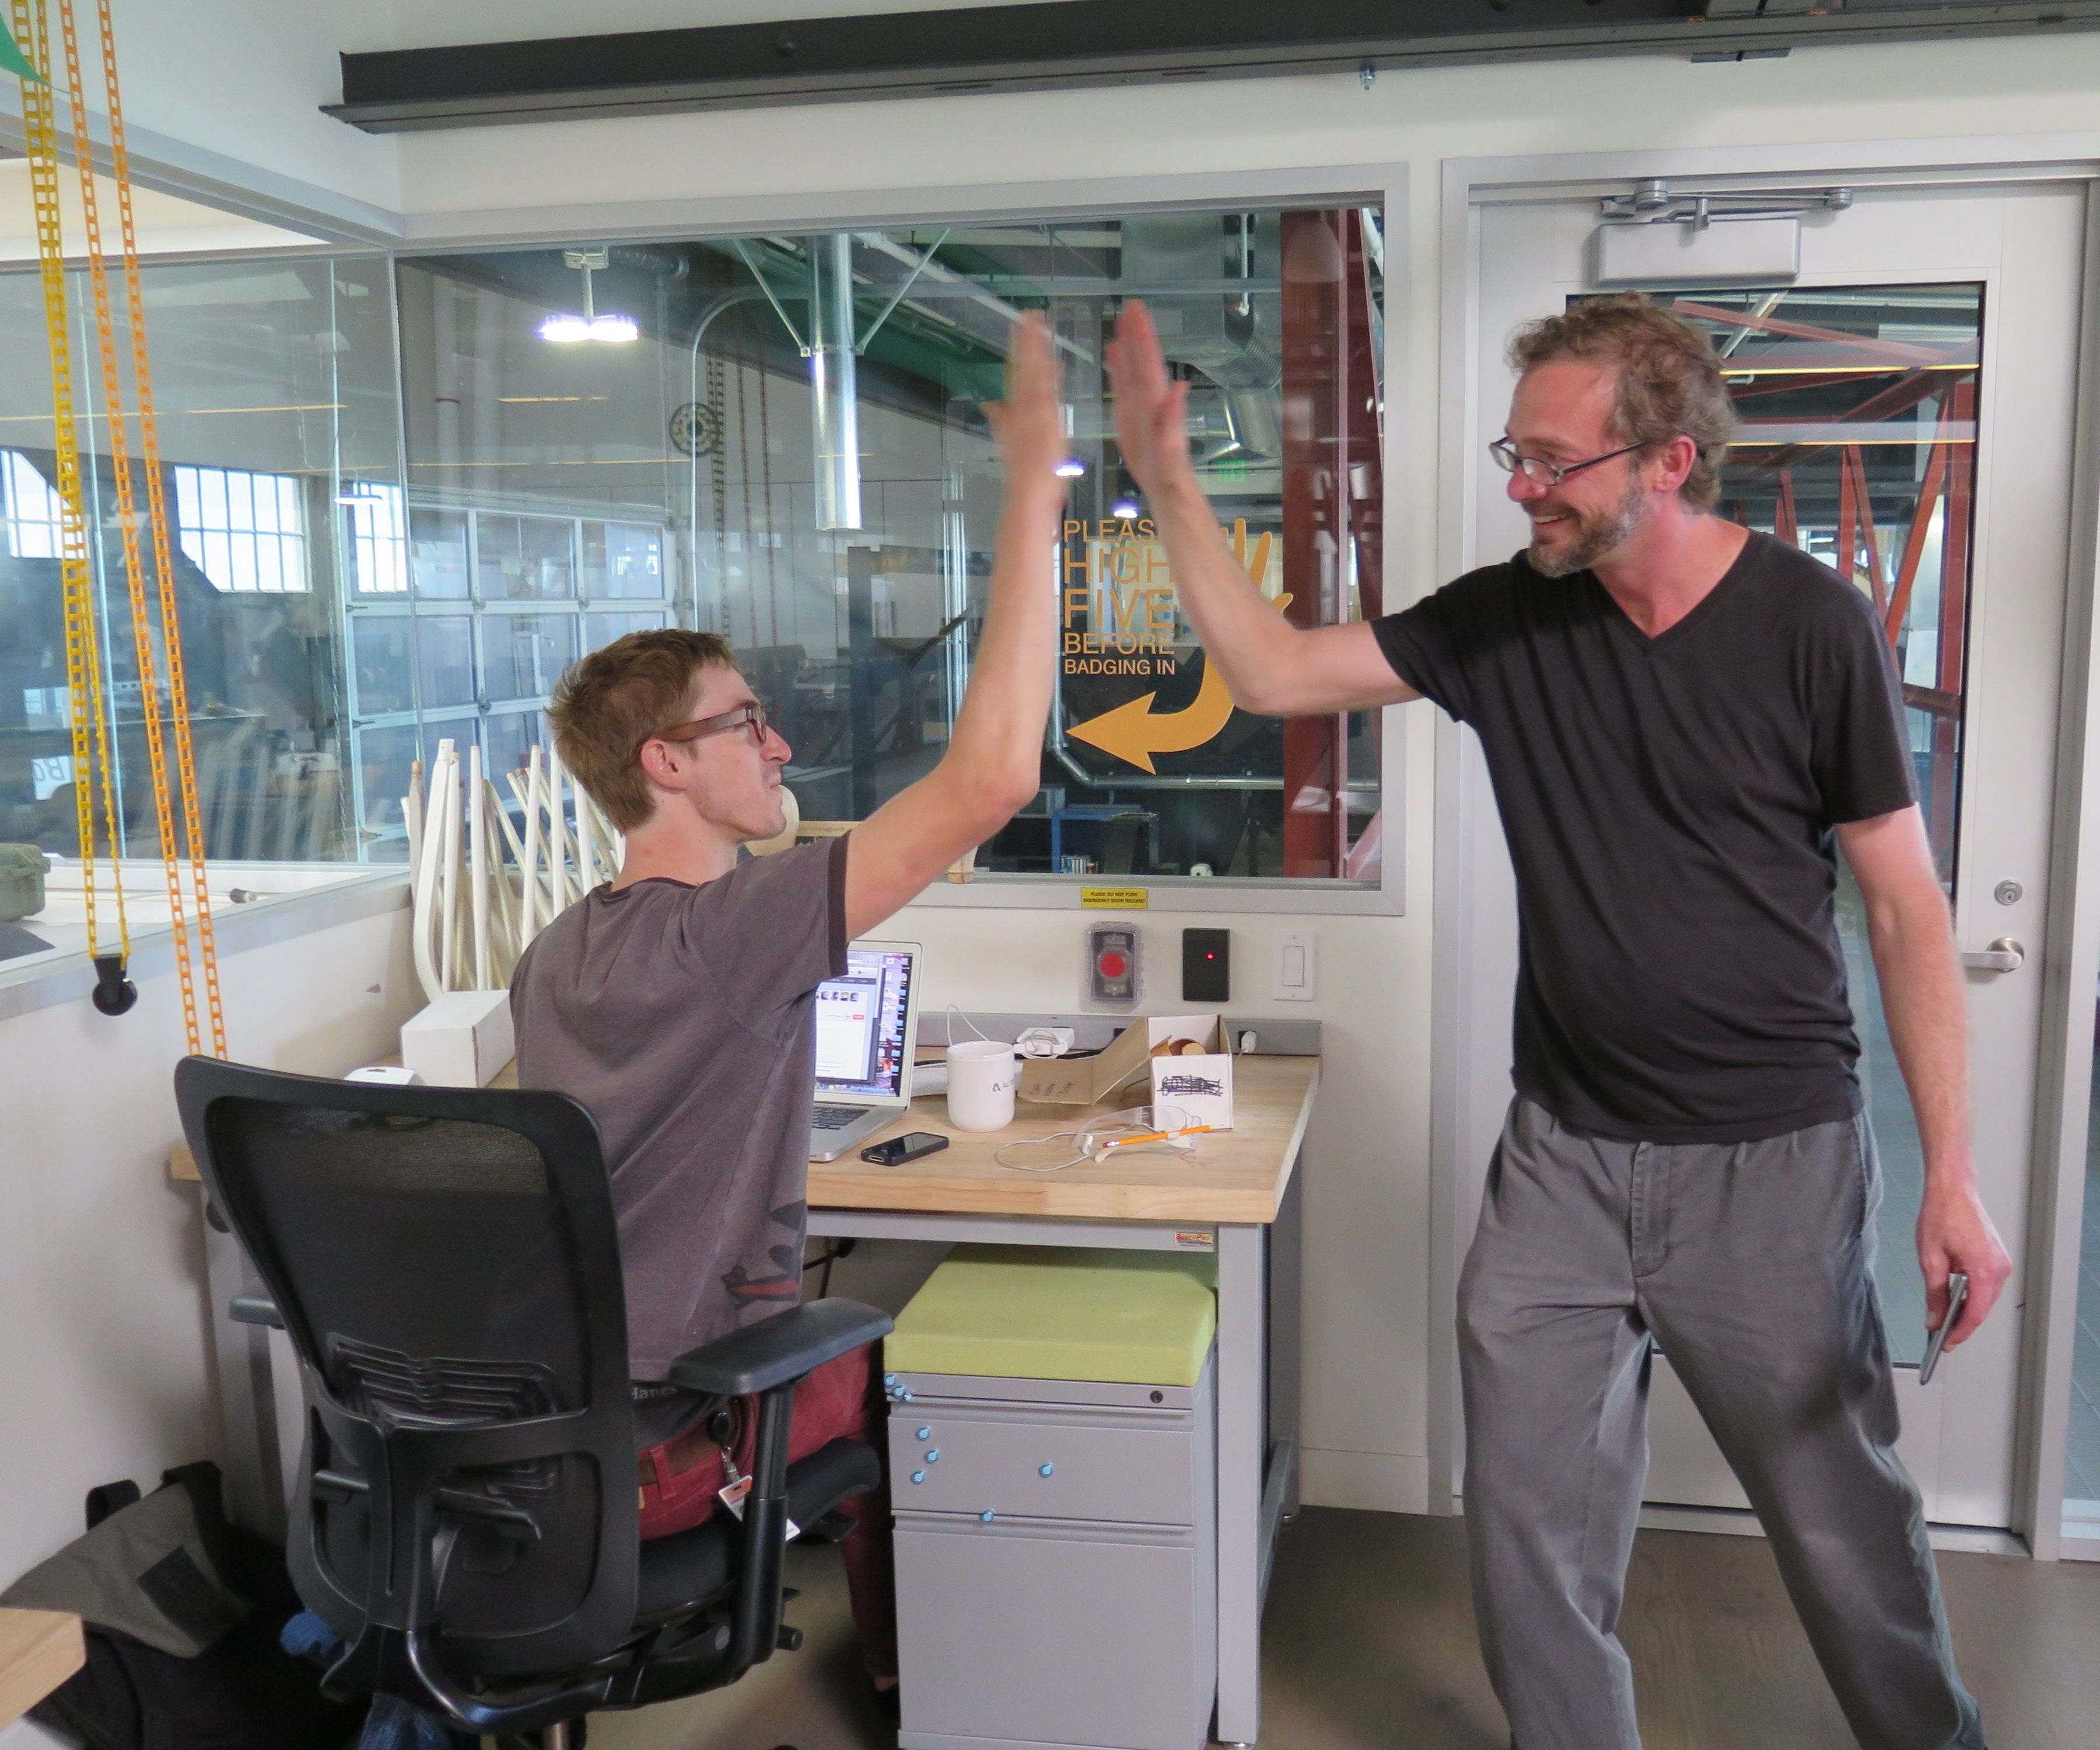 Get More High Fives at Work